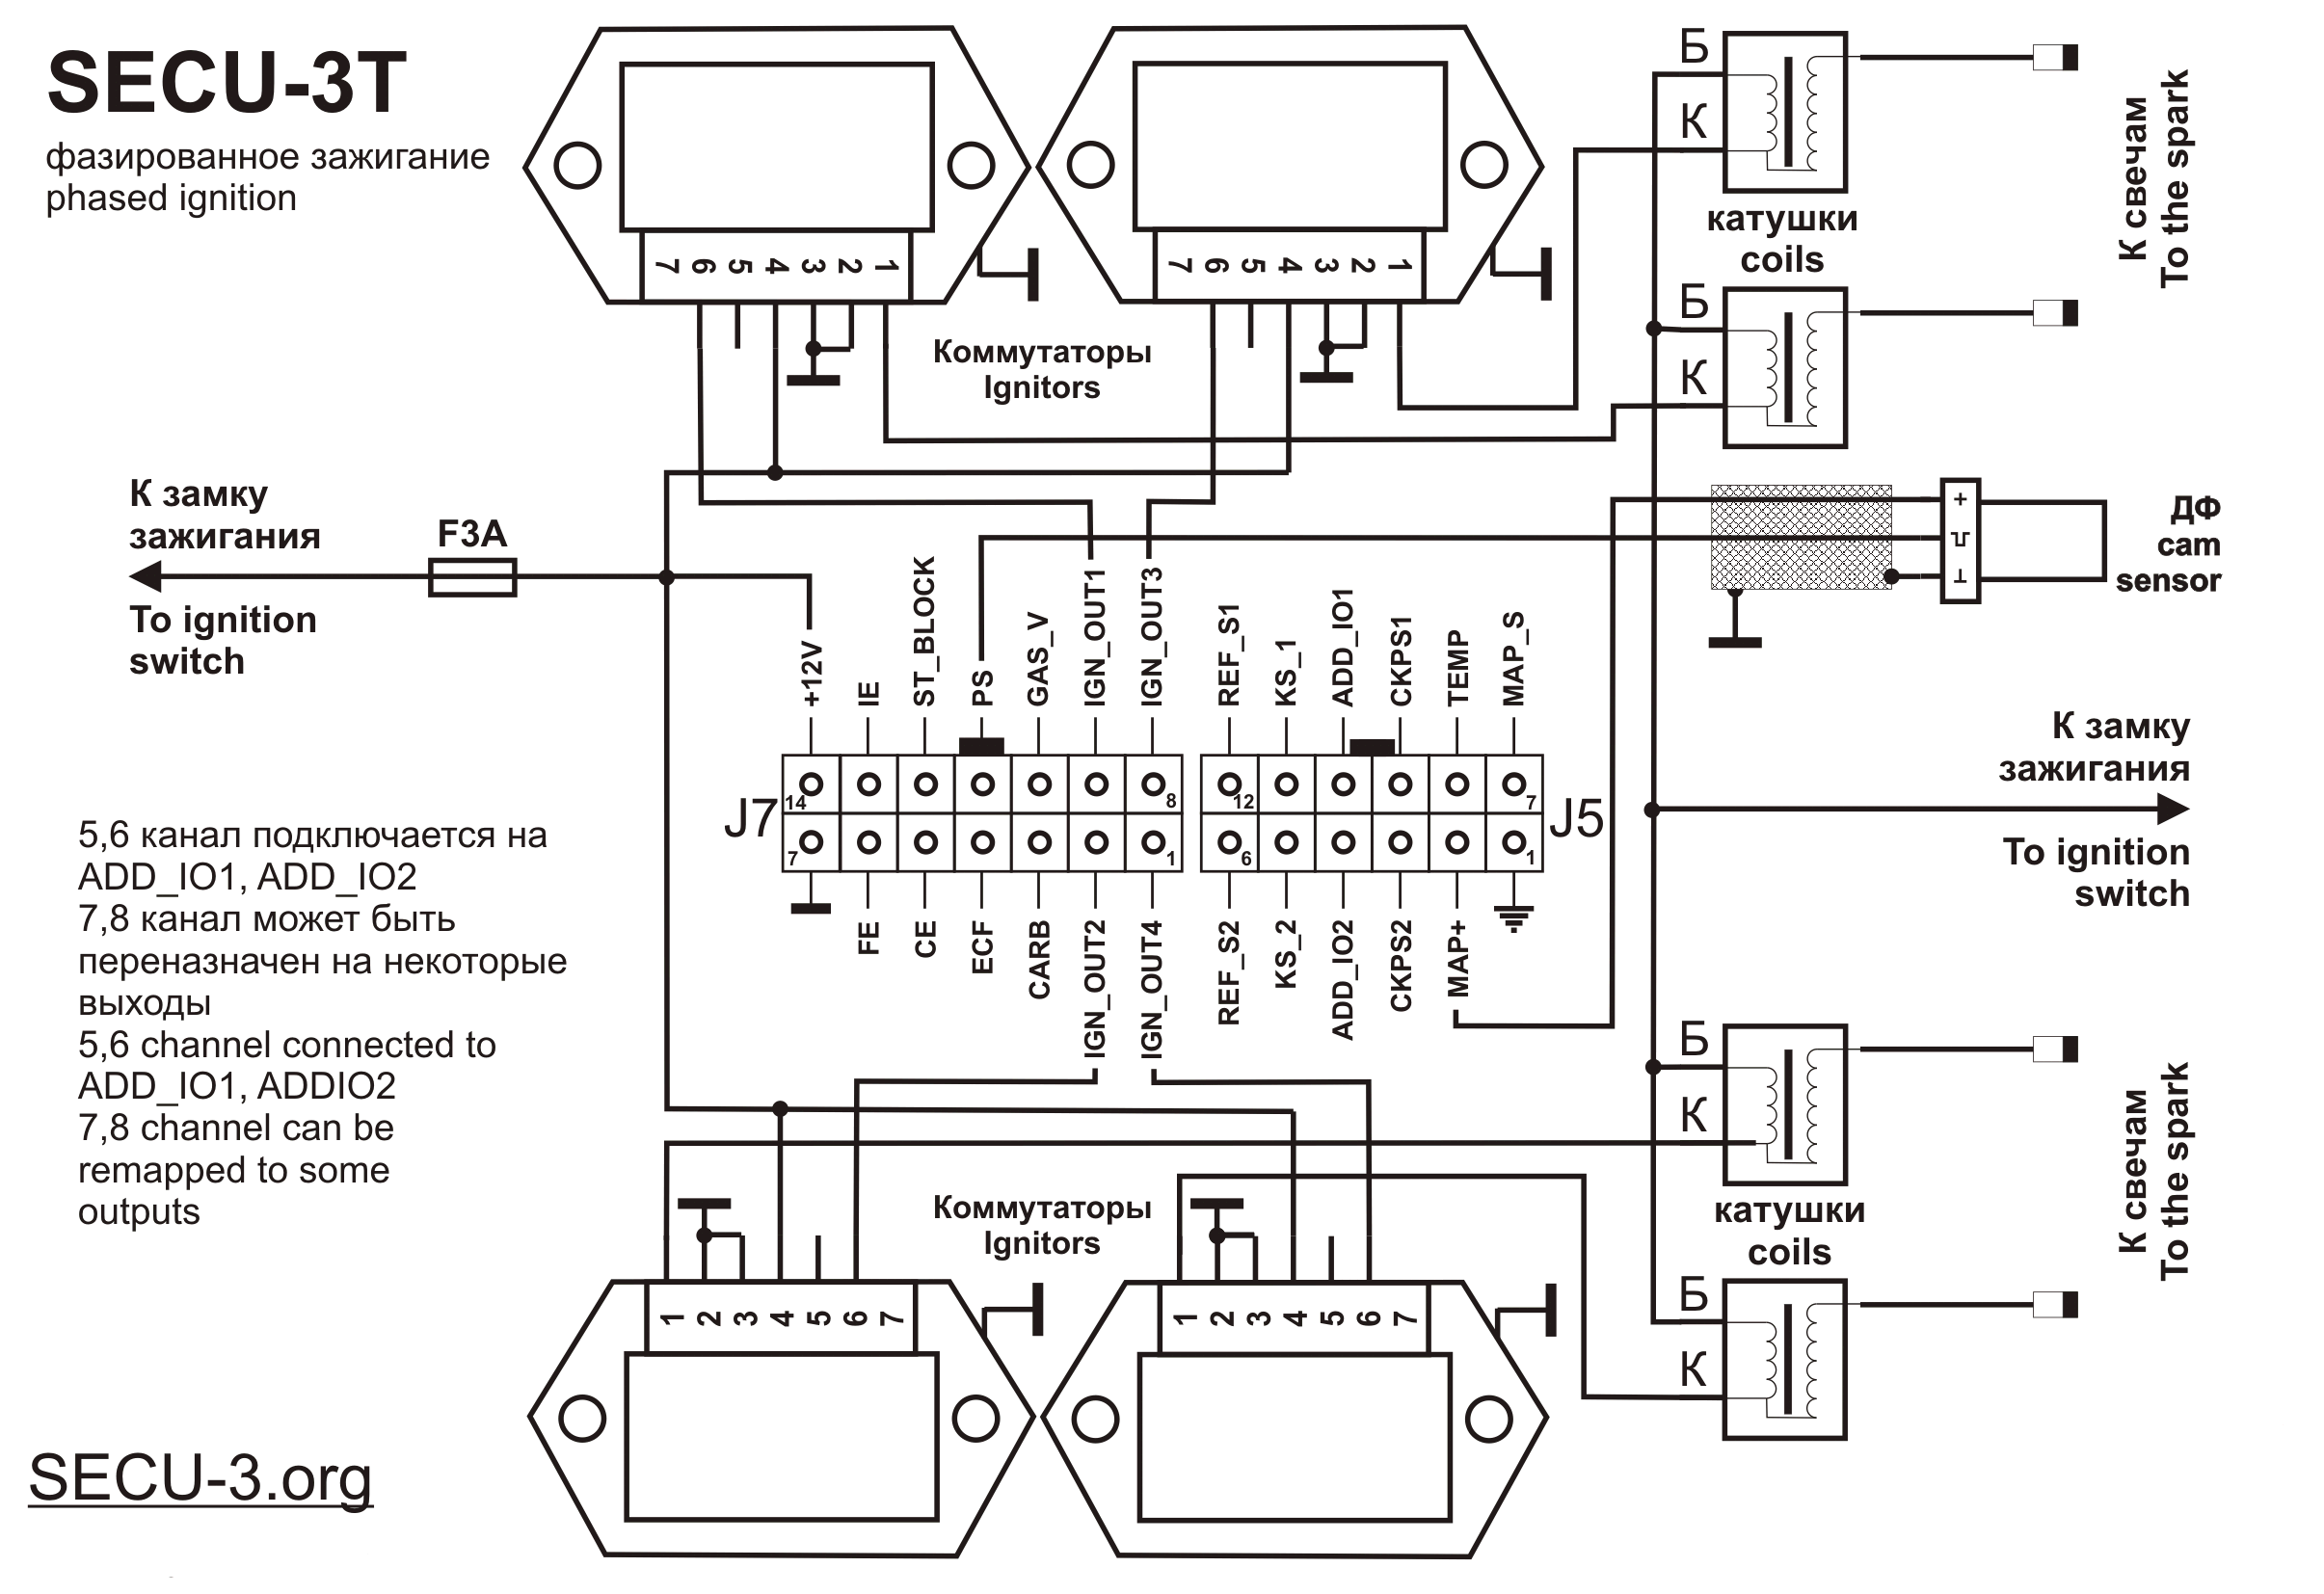 wiring diagrams for secu-3 units  examples    ignition and fuel injection system